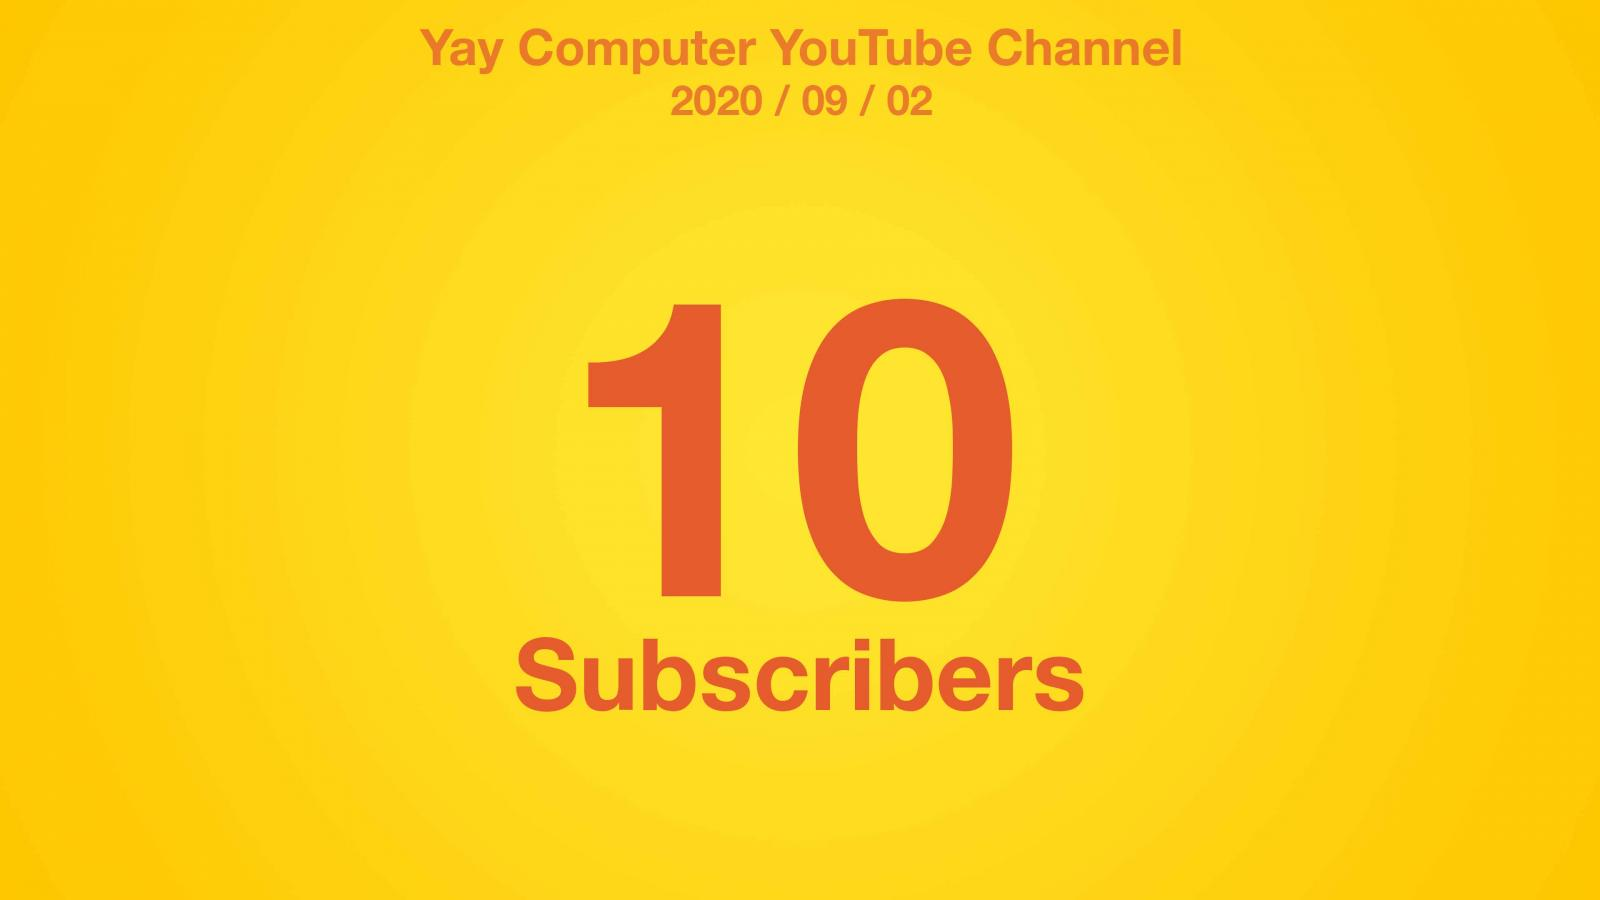 A yellow radial gradient with red text: Yay Computer YouTube Channel 2002/09/02 10 Subscribers